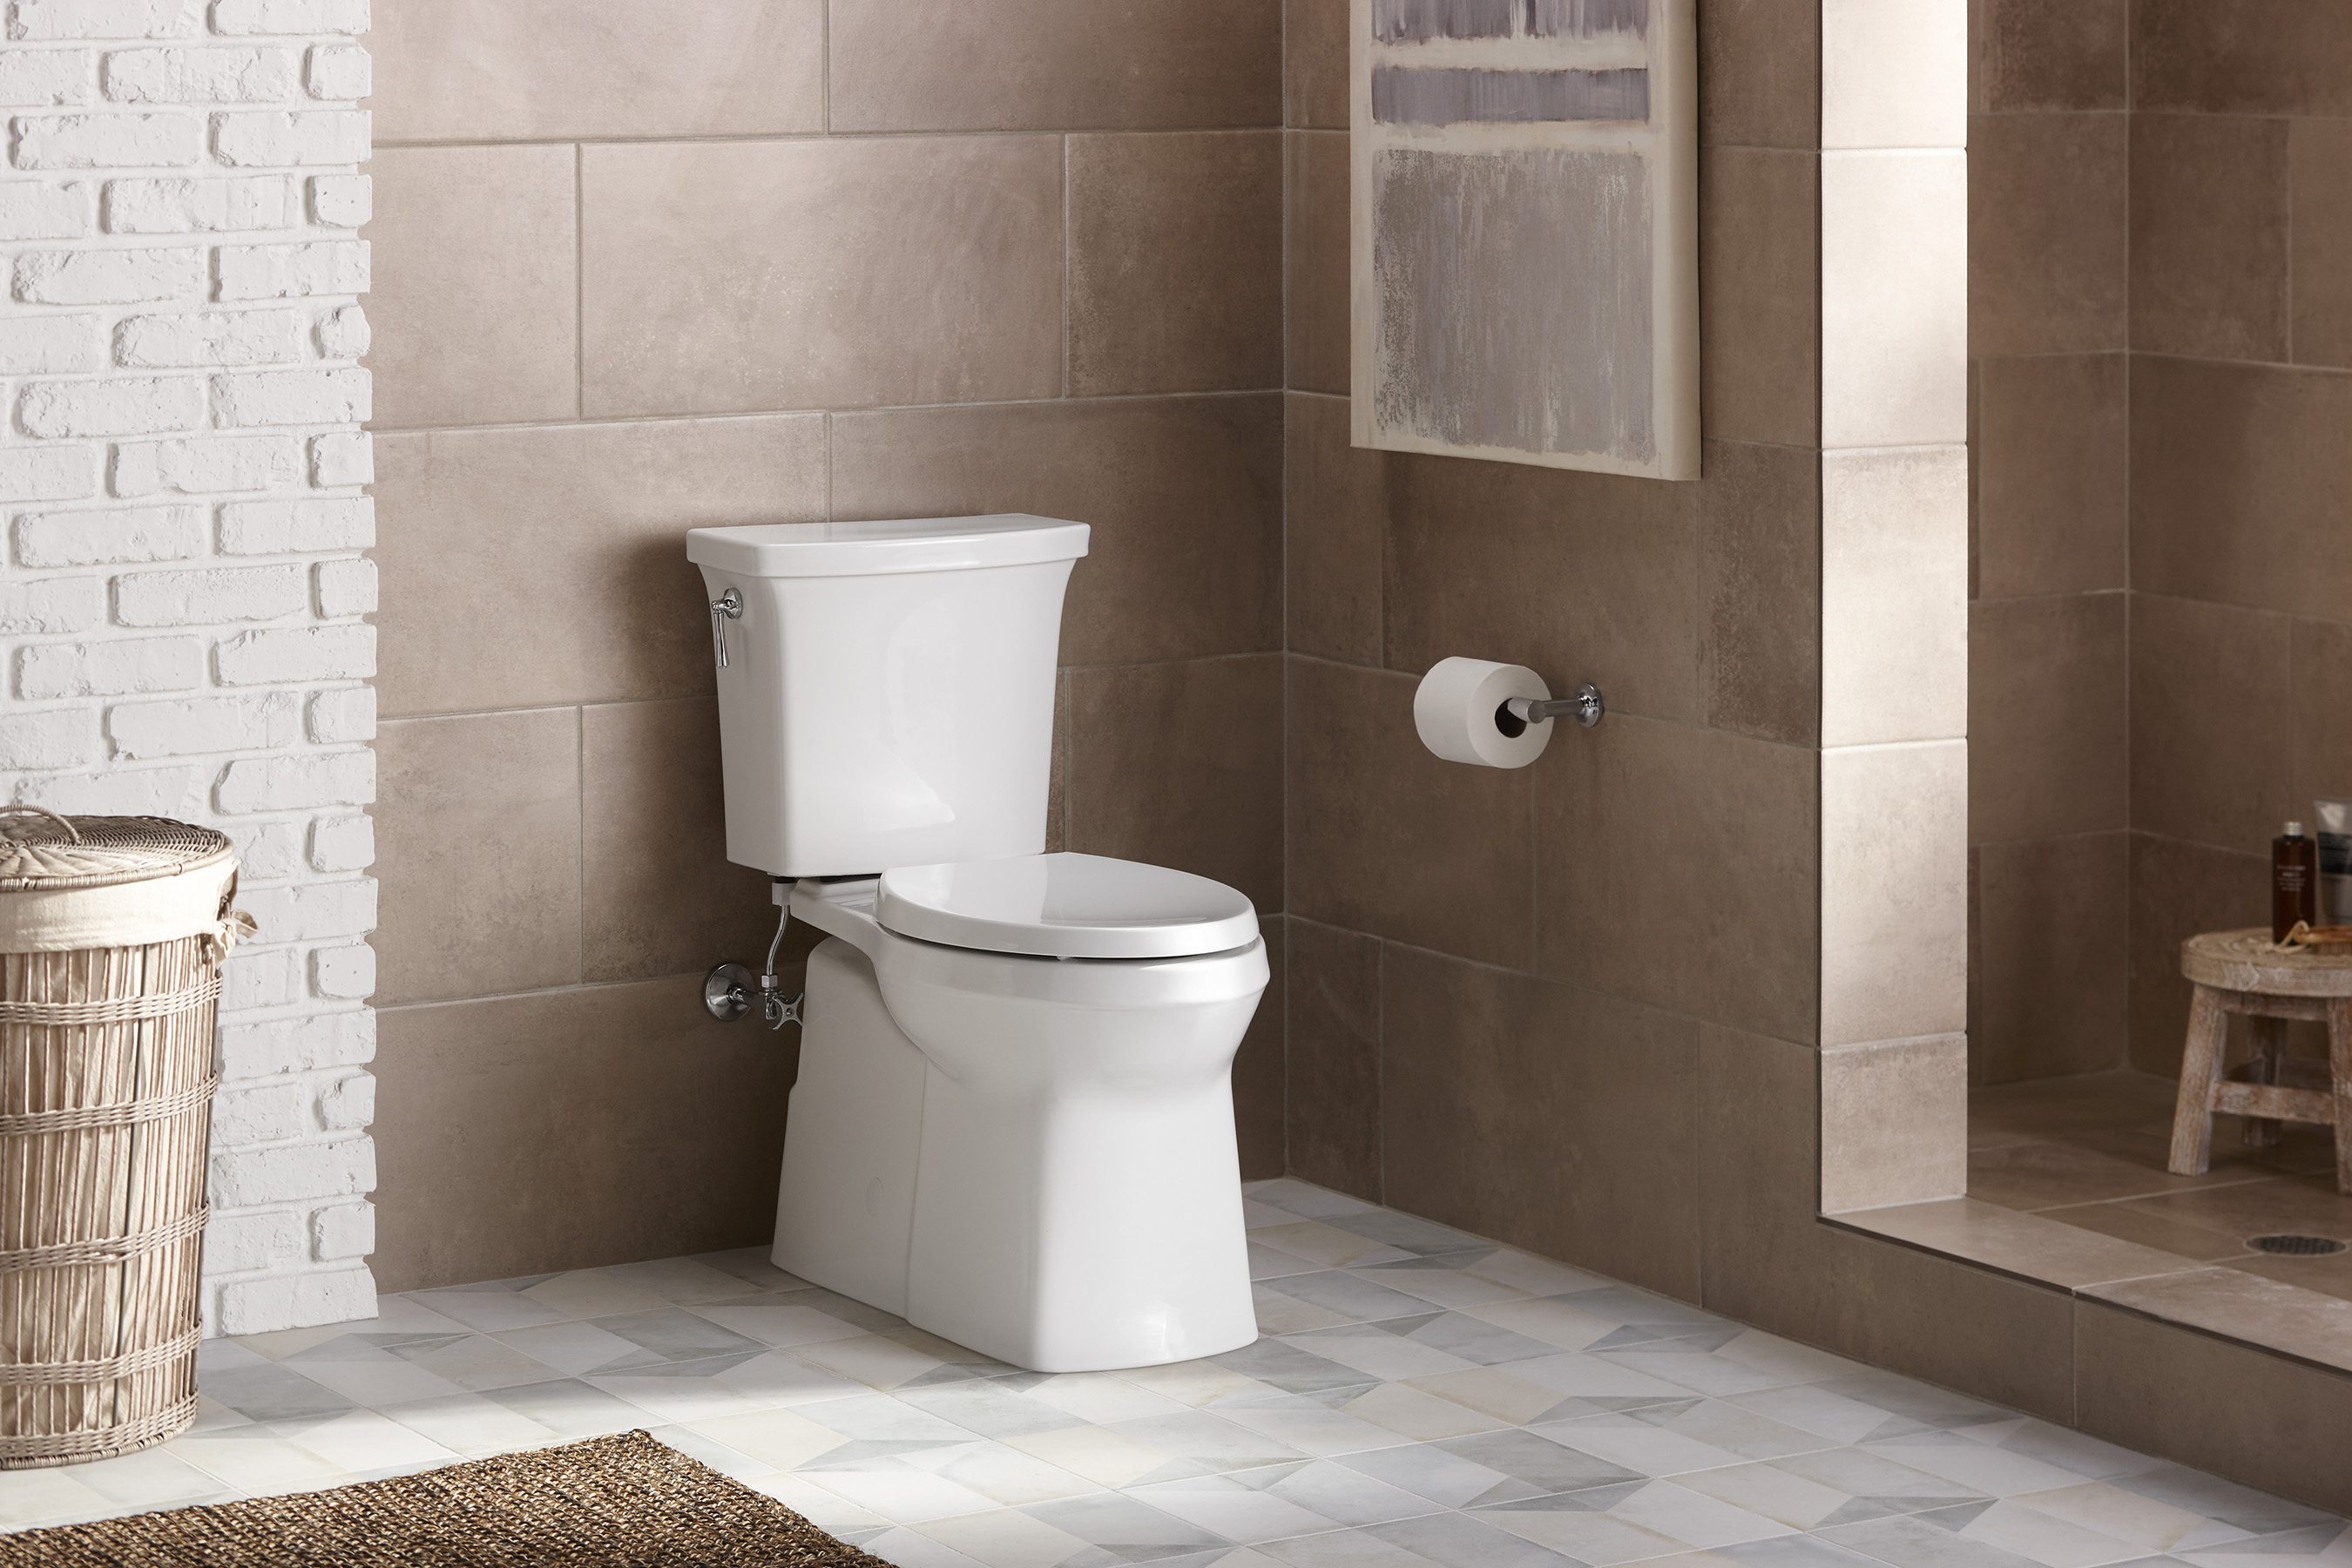 Kohler Corbelle toilet with Revolution 360 flush is powered by the AquaPiston canister technology which allows water to flow out of the tank at 360 degrees, increasing the power and effectiveness of the flush.